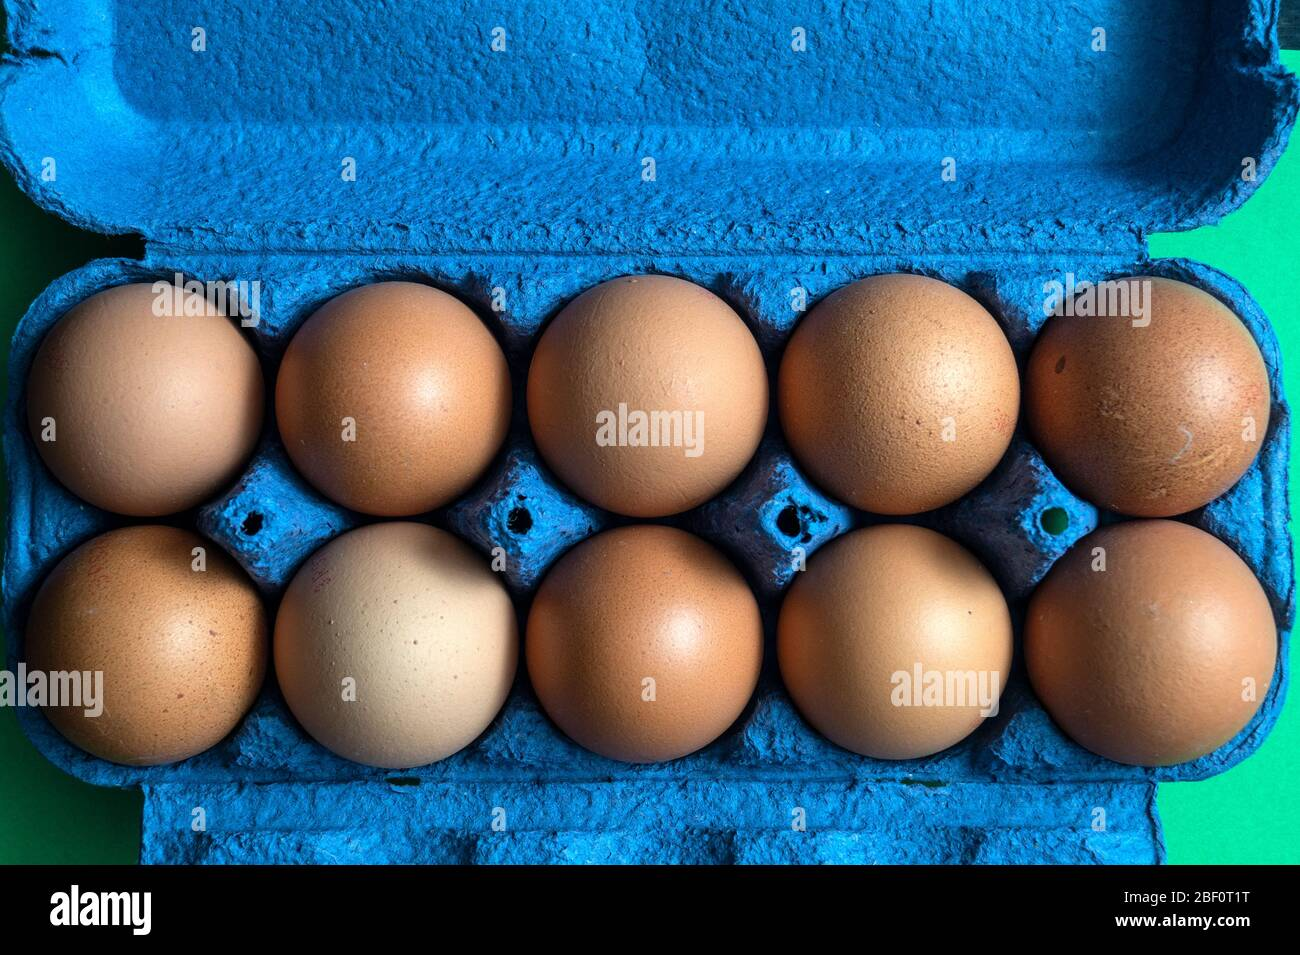 Organic brown chicken eggs in carton on rustic wooden table backgrounds, natural healthy food concepts Stock Photo